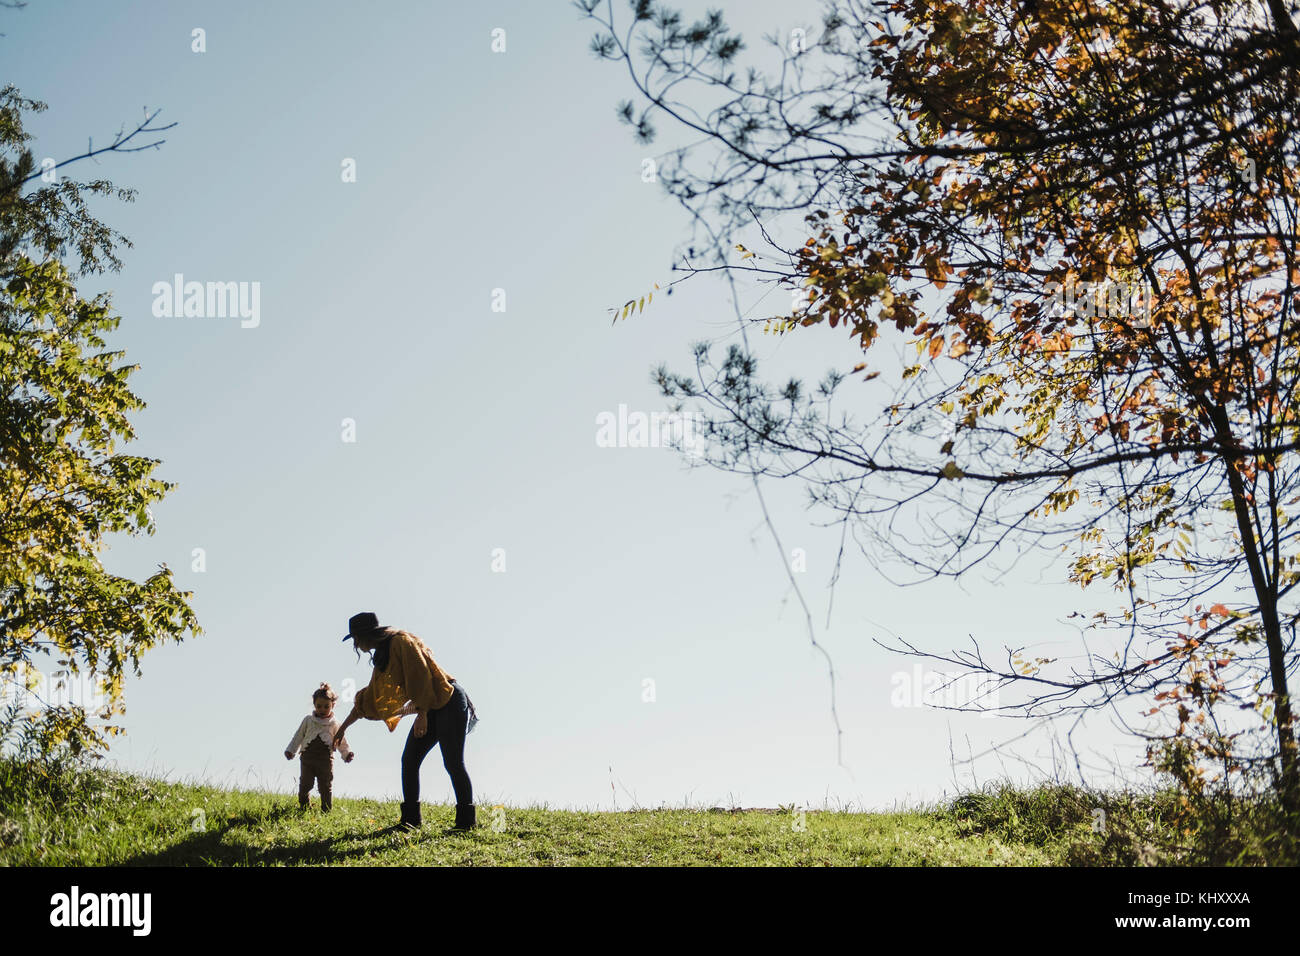 Mother and baby girl on hilltop, Oshawa, Canada, North America - Stock Image